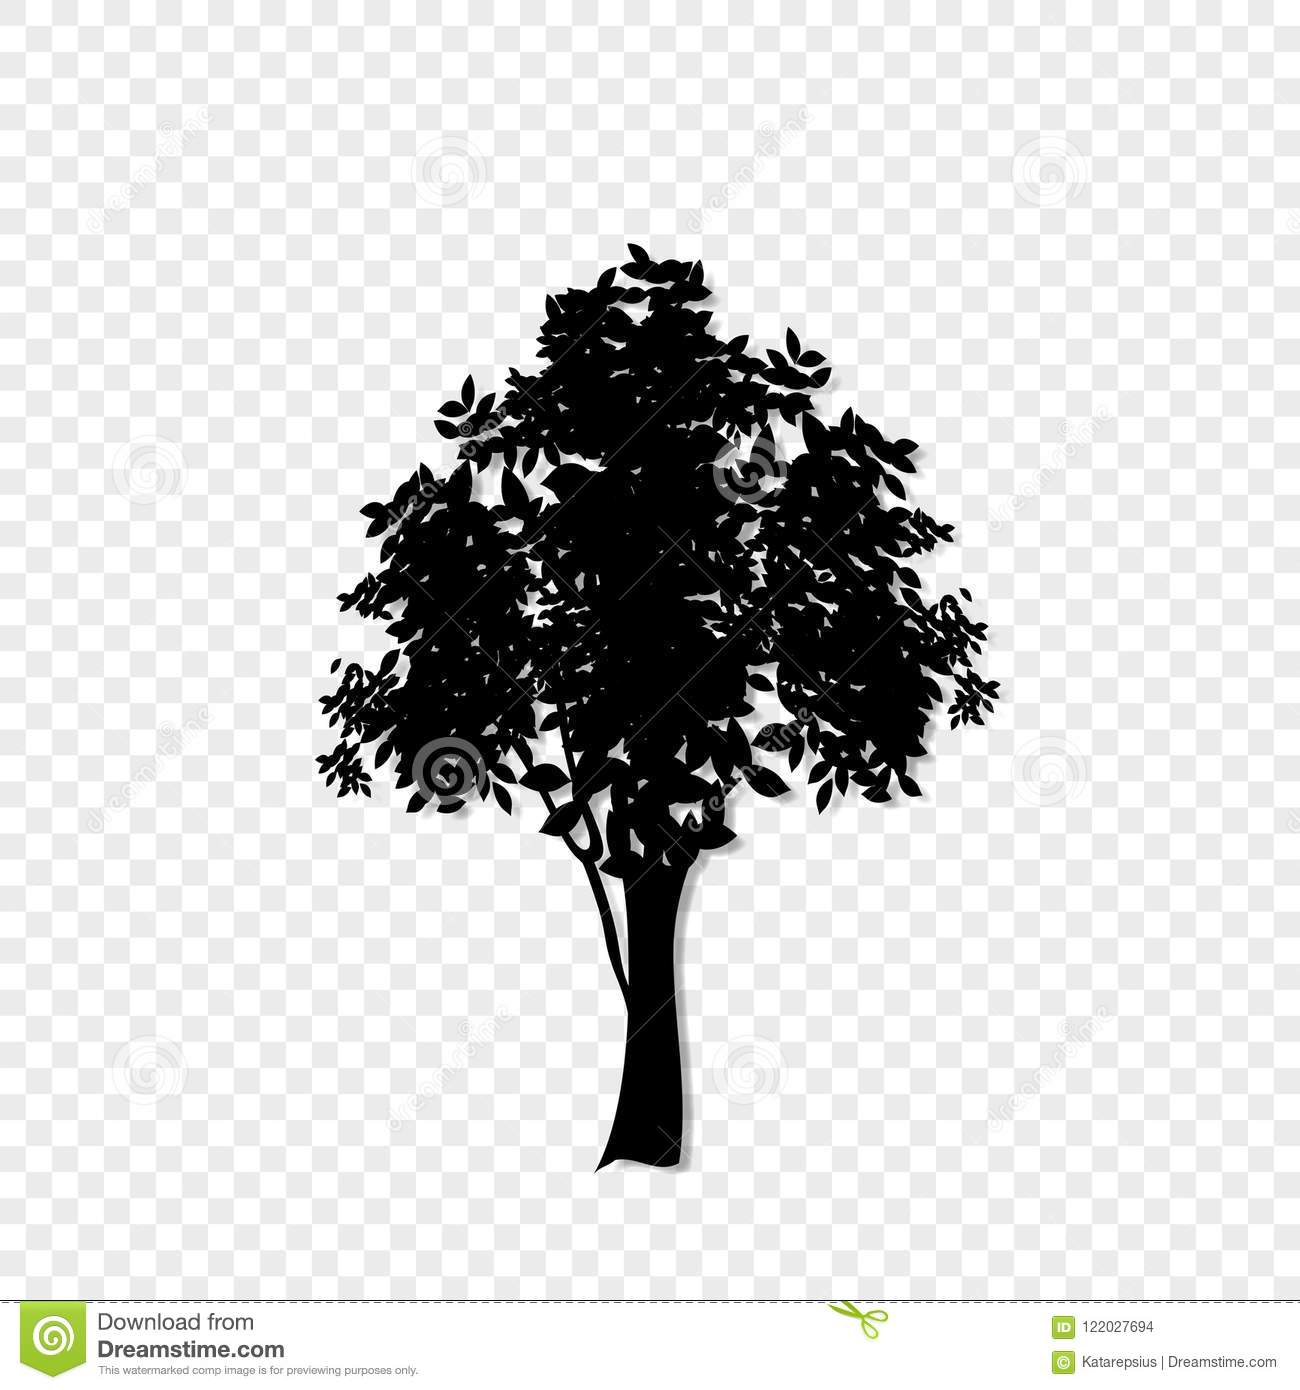 Black Silhouette Of Leafed Tree Icon Isolated On